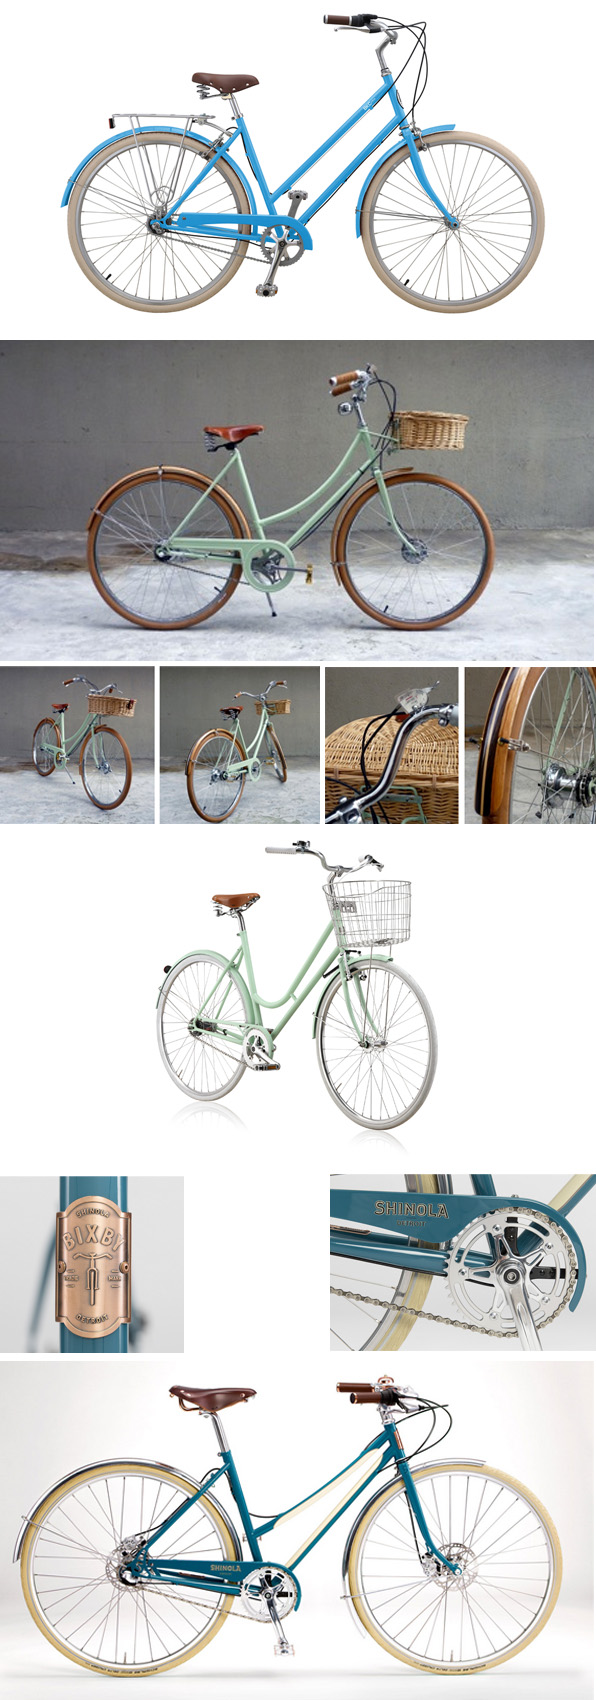 wishlist bikes in MODUS-VIVENDI